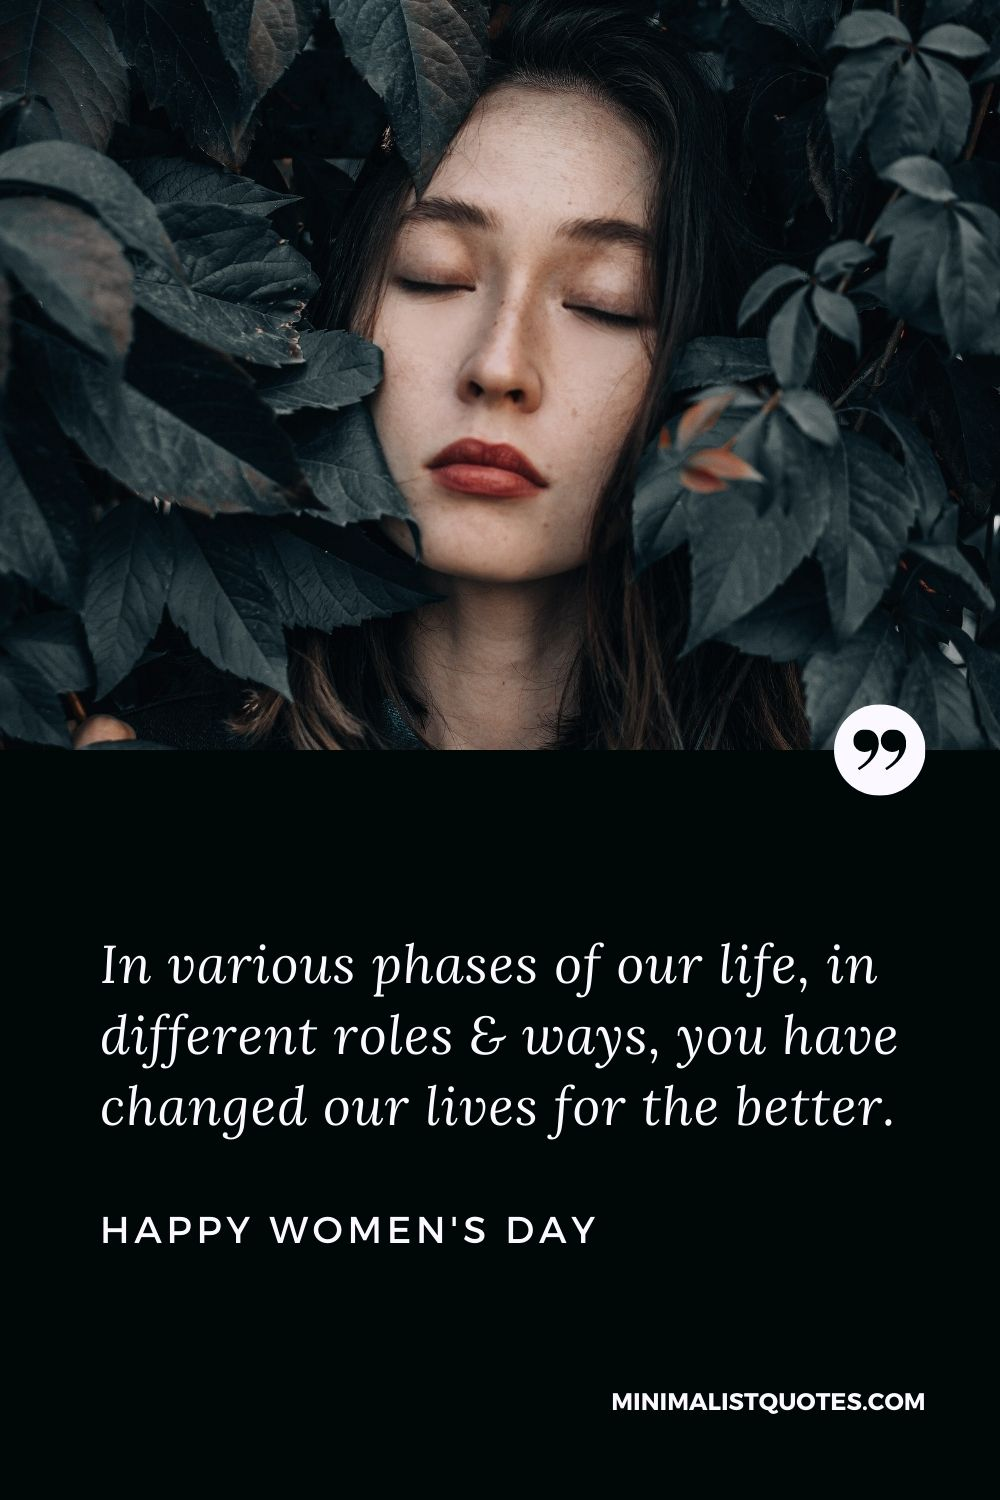 Women's Day Wish & Message With HD Image: In various phases of our life, in different roles & ways, you have changed our lives for the better. Happy Women's Day!